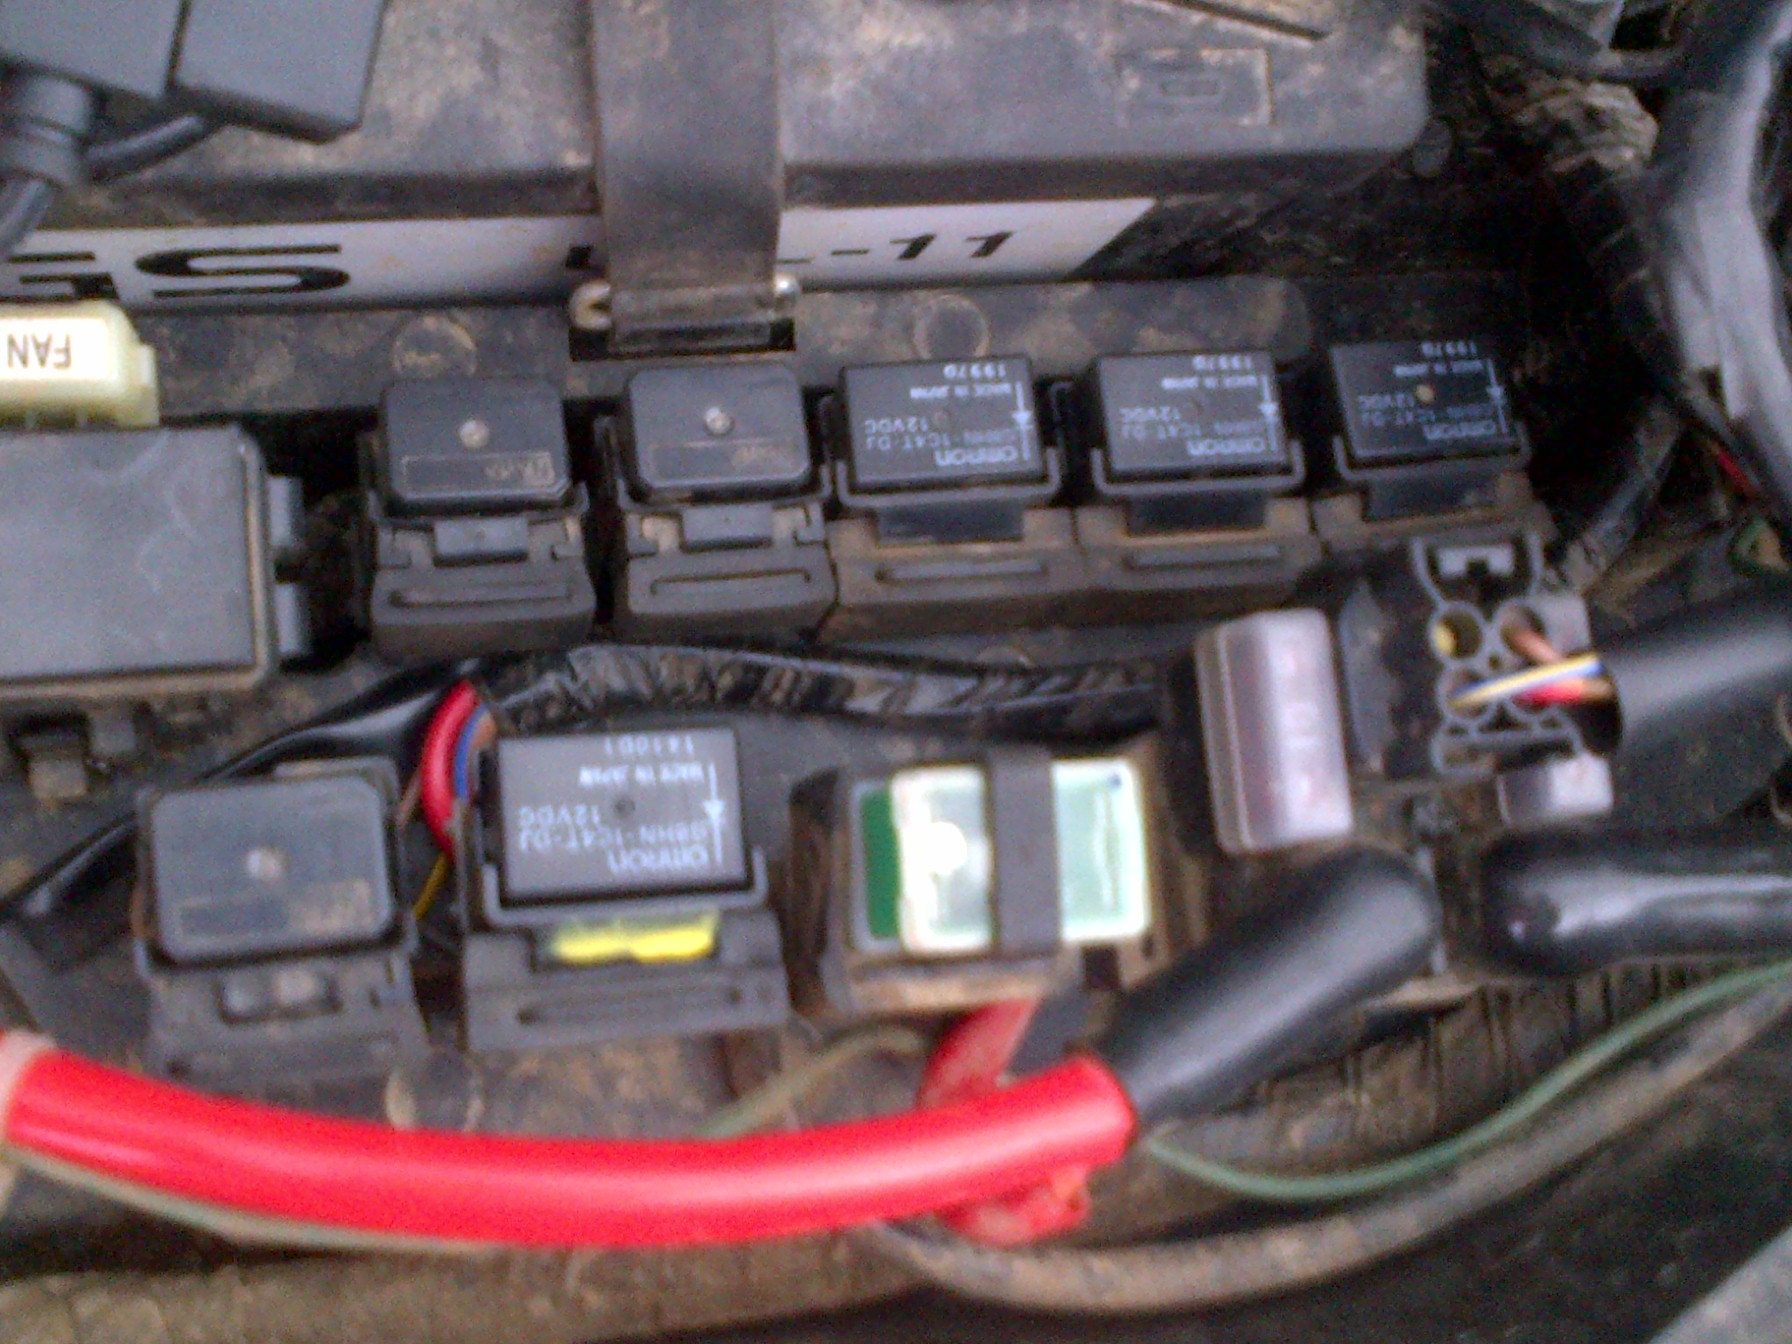 2013 02 27_225531_rhino fusibles de_face i have a yamaha rhino 2008 700fi i experienced a lot of problem 2004 polaris sportsman 700 fuse box location at gsmx.co